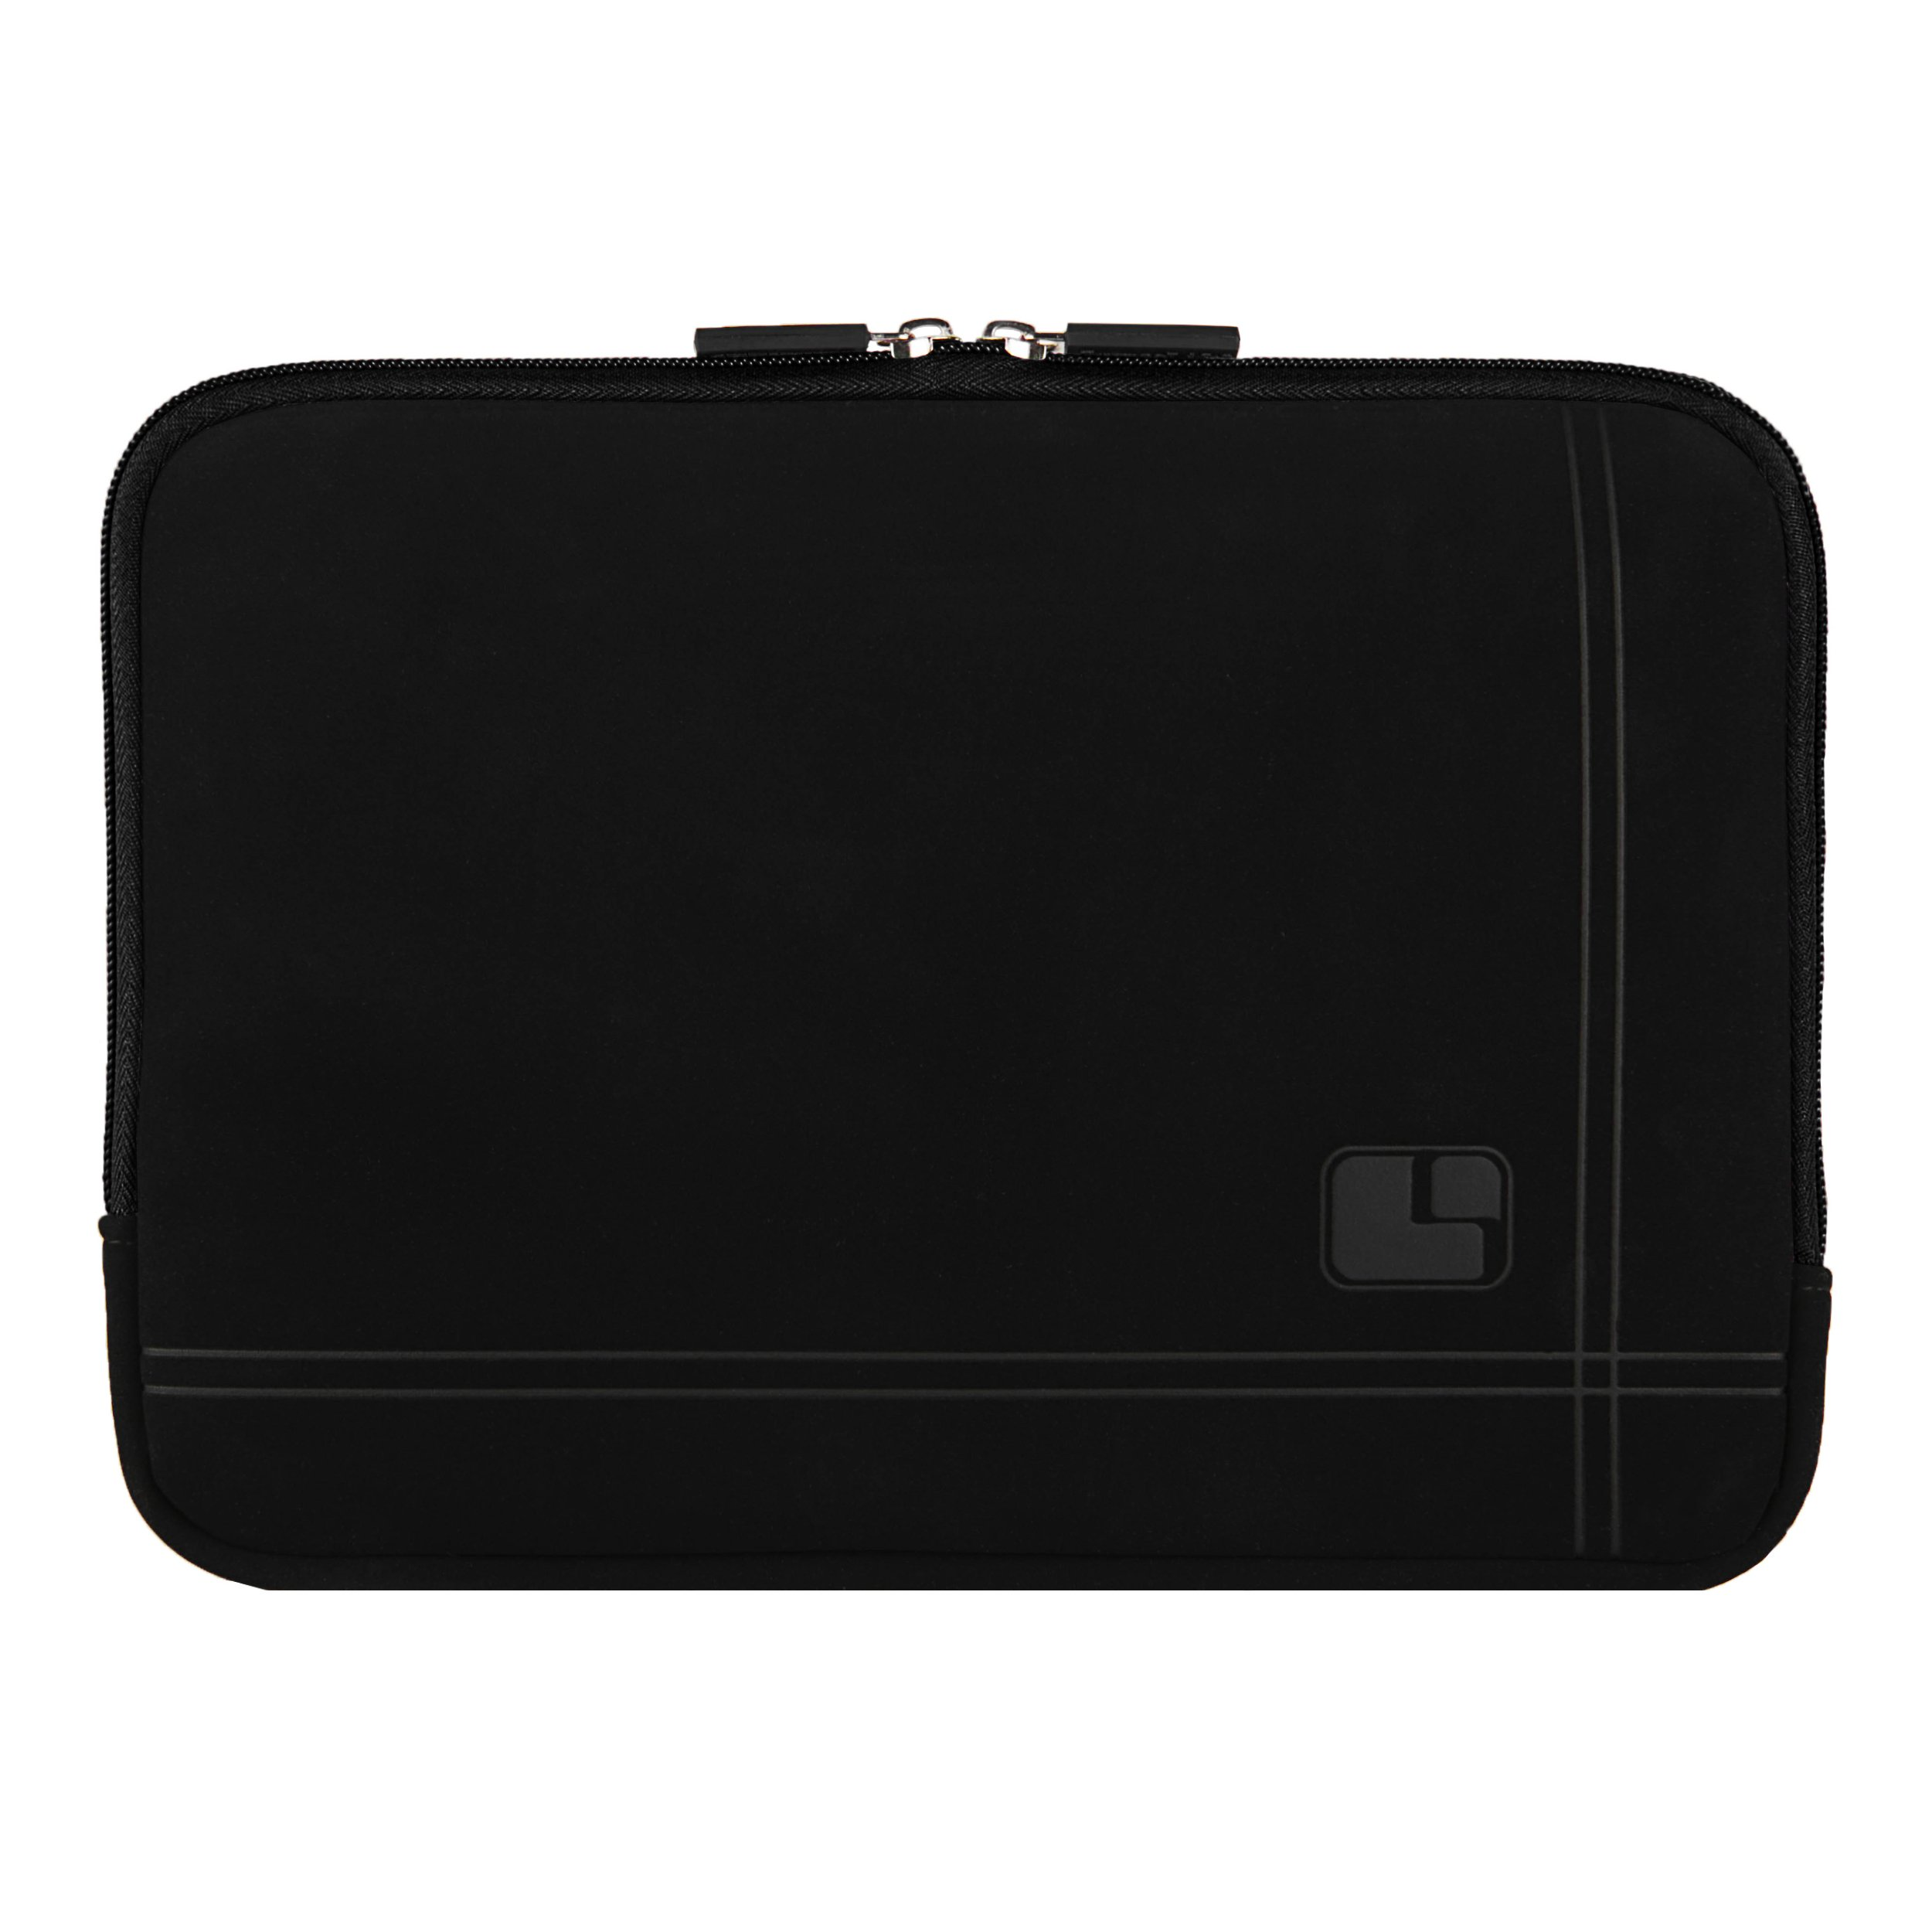 Black Suede Sleeve Case With Pocket protect All-New Kindle Fire HD 10 Slim Travel Pouch